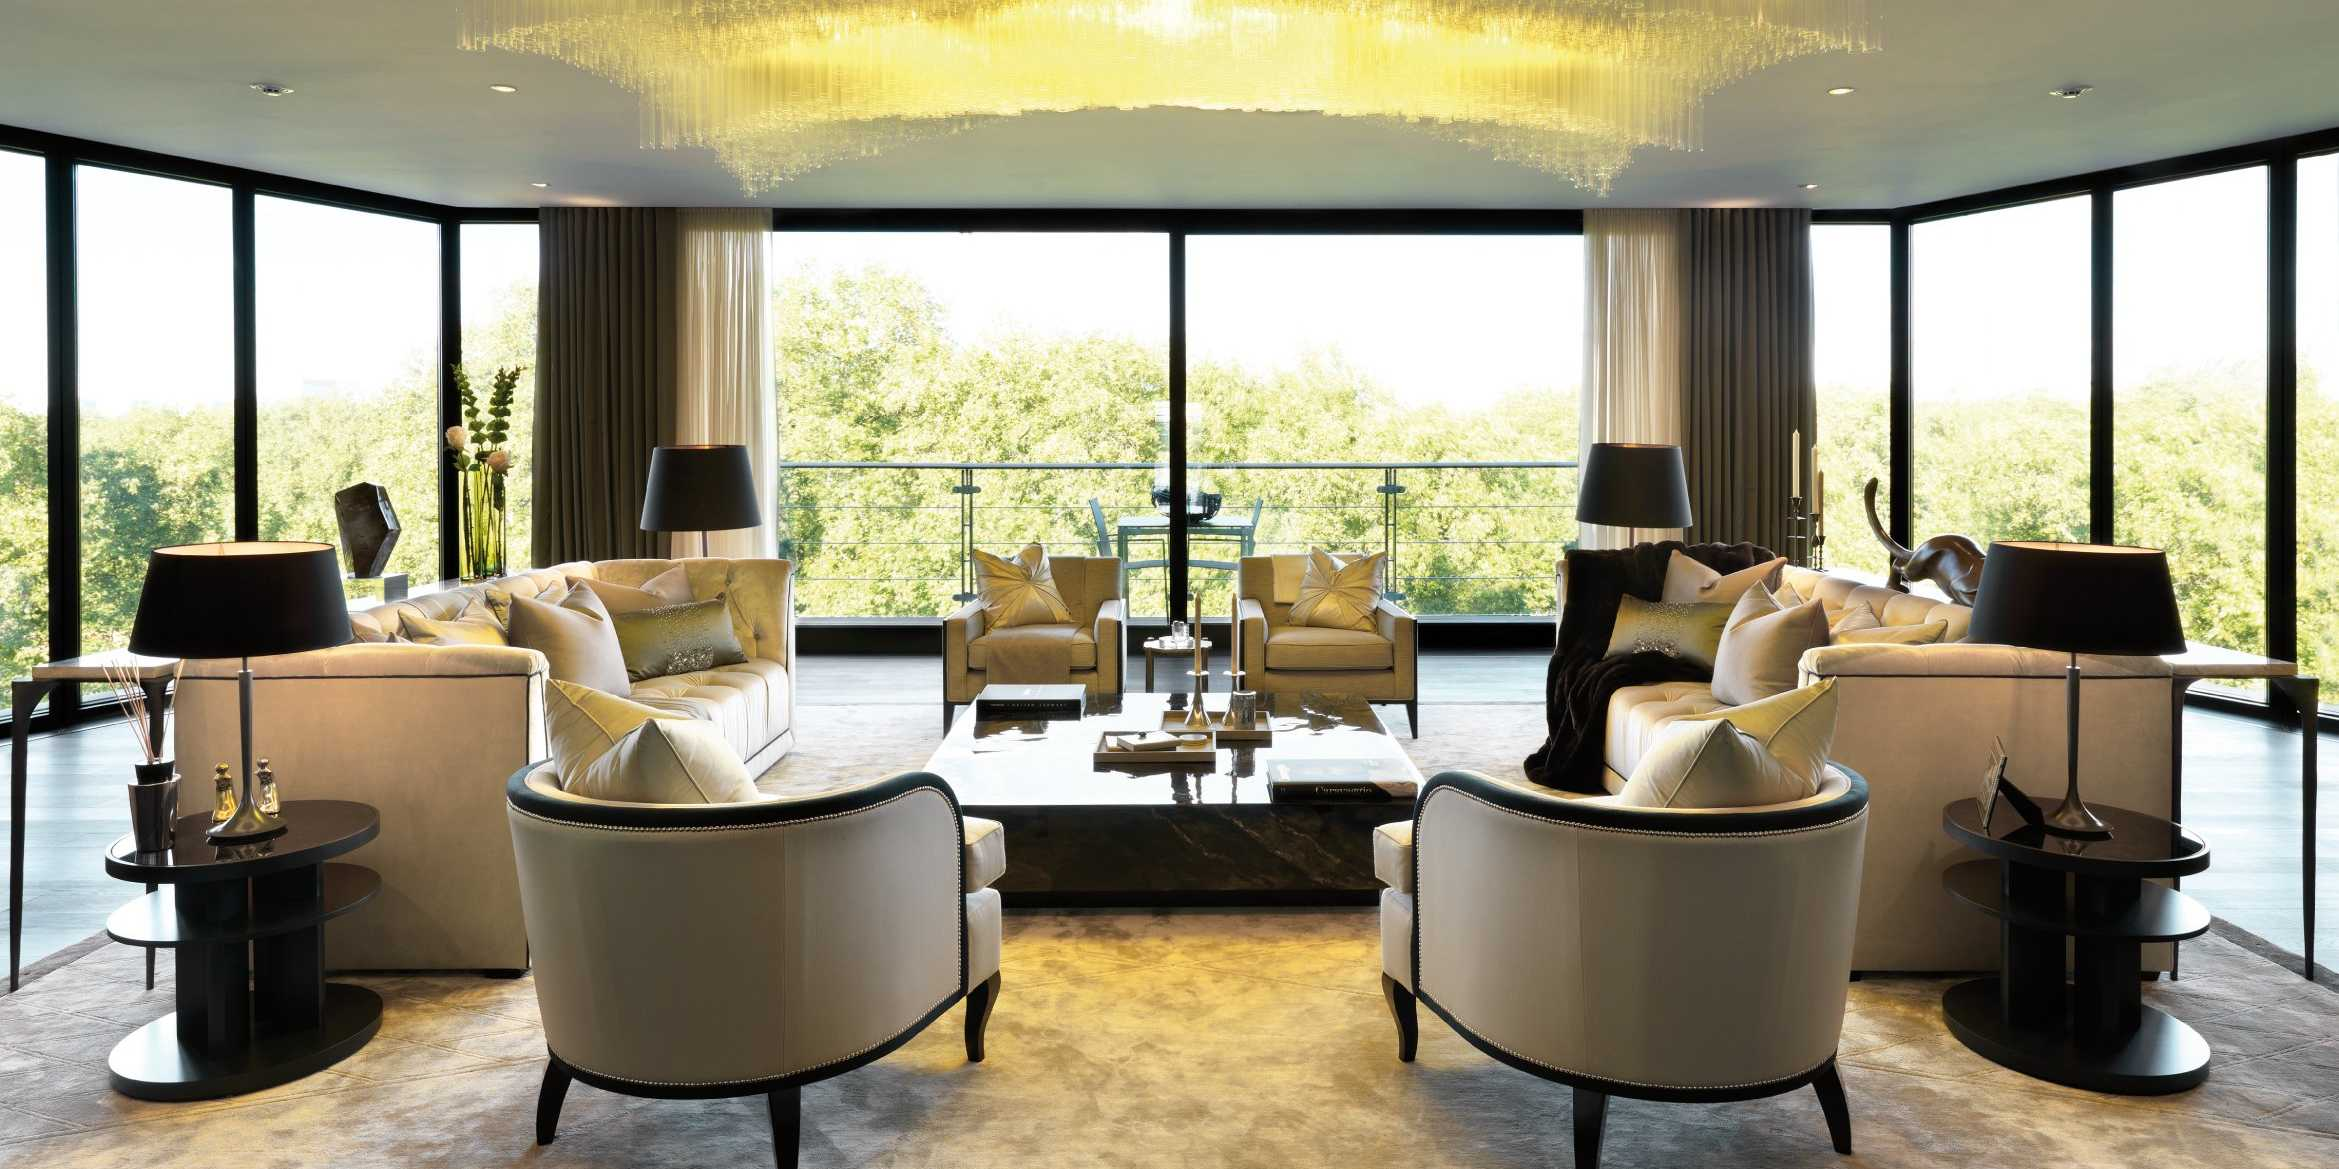 Floor to ceiling windows surround this living space with cream sofas with a black trim facing each other and a coffee table in the middle of the room